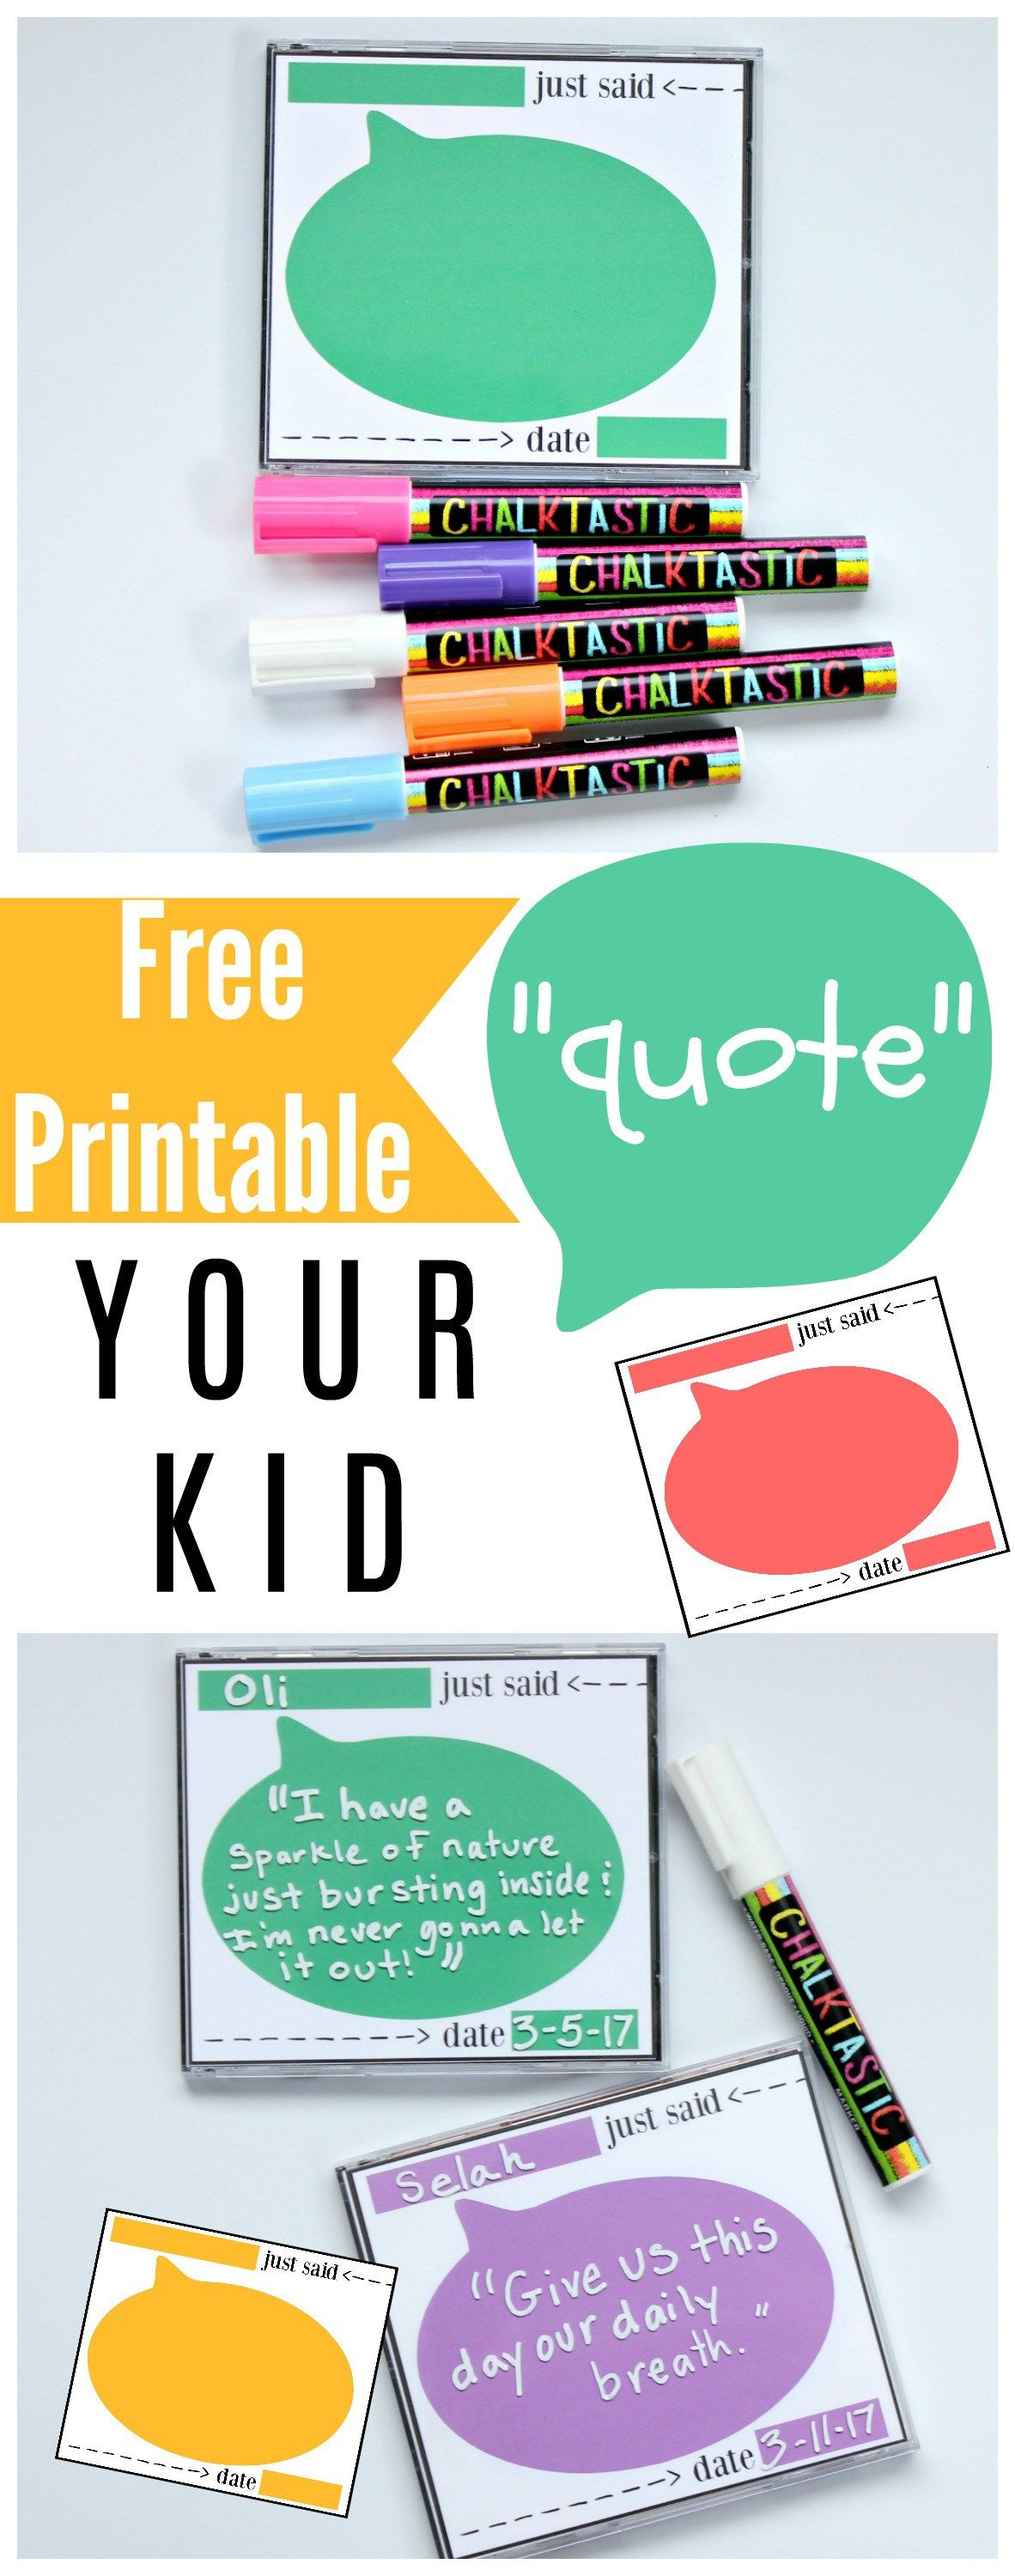 Free Printable to Quote Your Kid in 2018   FONTS & PRINTABLES ...